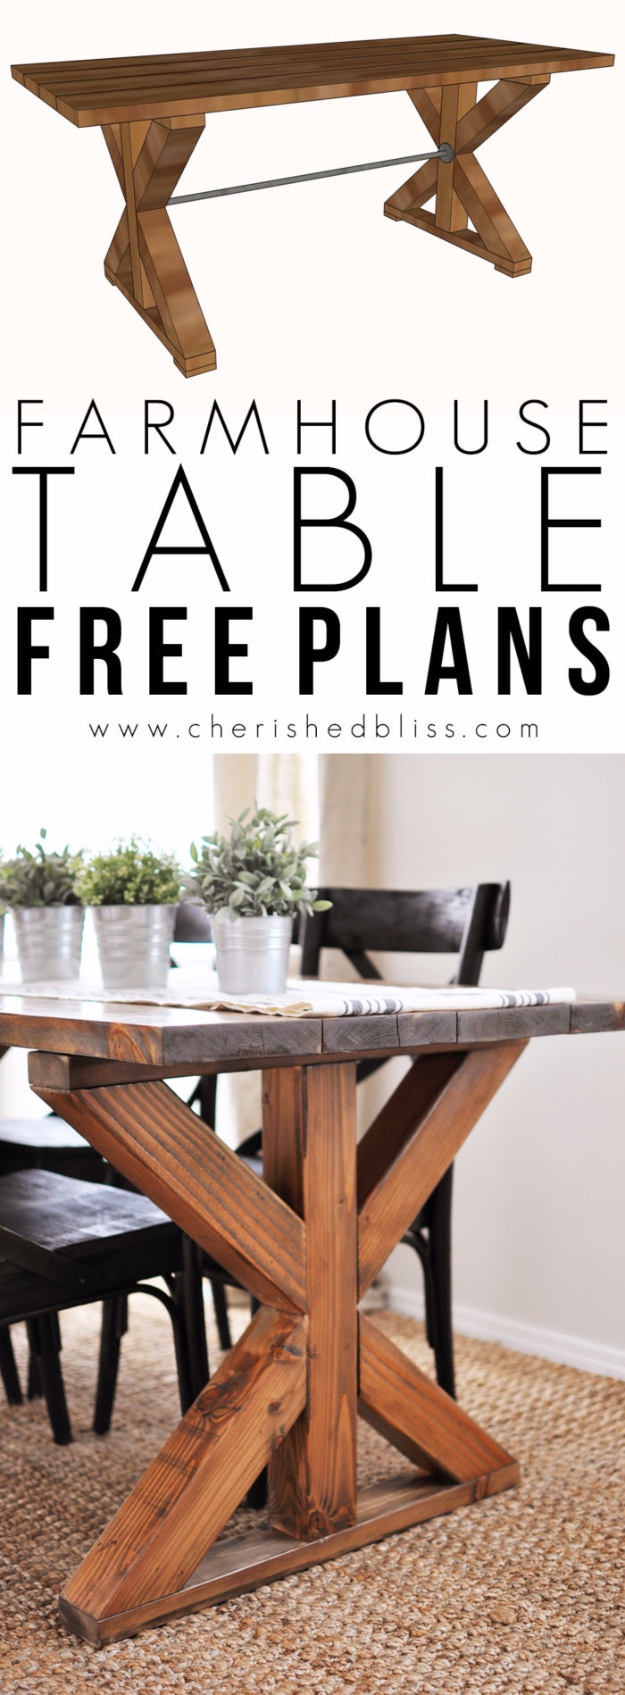 DIY Dining Room Table Projects - X Brace Farmhouse Table - Creative Do It Yourself Tables and Ideas You Can Make For Your Kitchen or Dining Area. Easy Step by Step Tutorials that Are Perfect For Those On A Budget #diyfurniture #diningroom